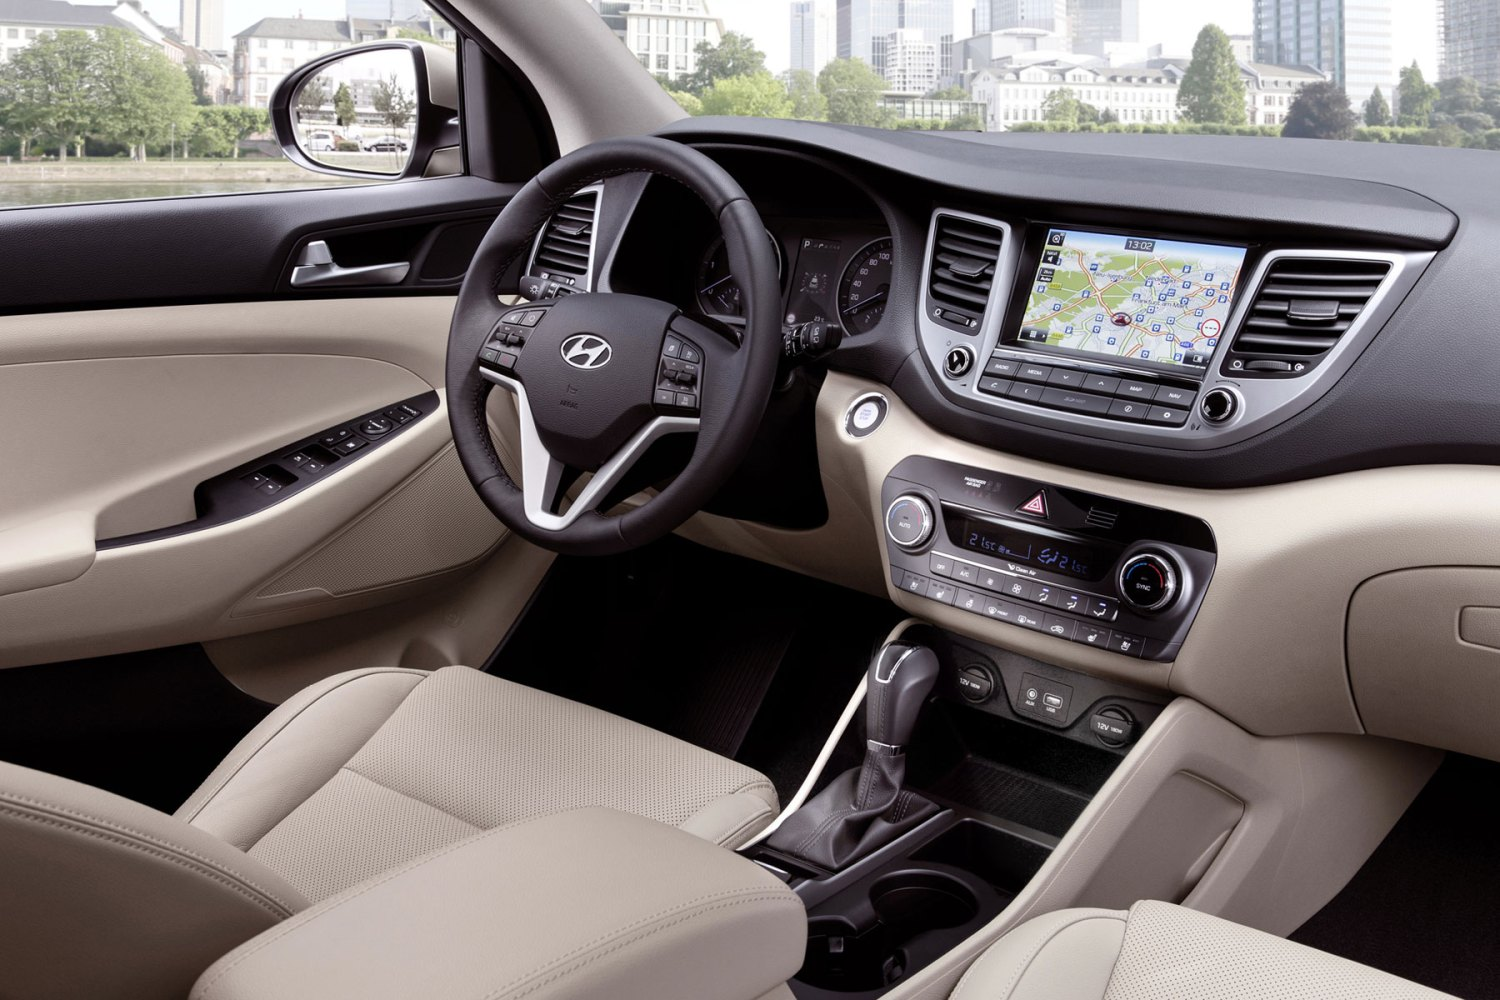 Hyundai Tucson: On the inside